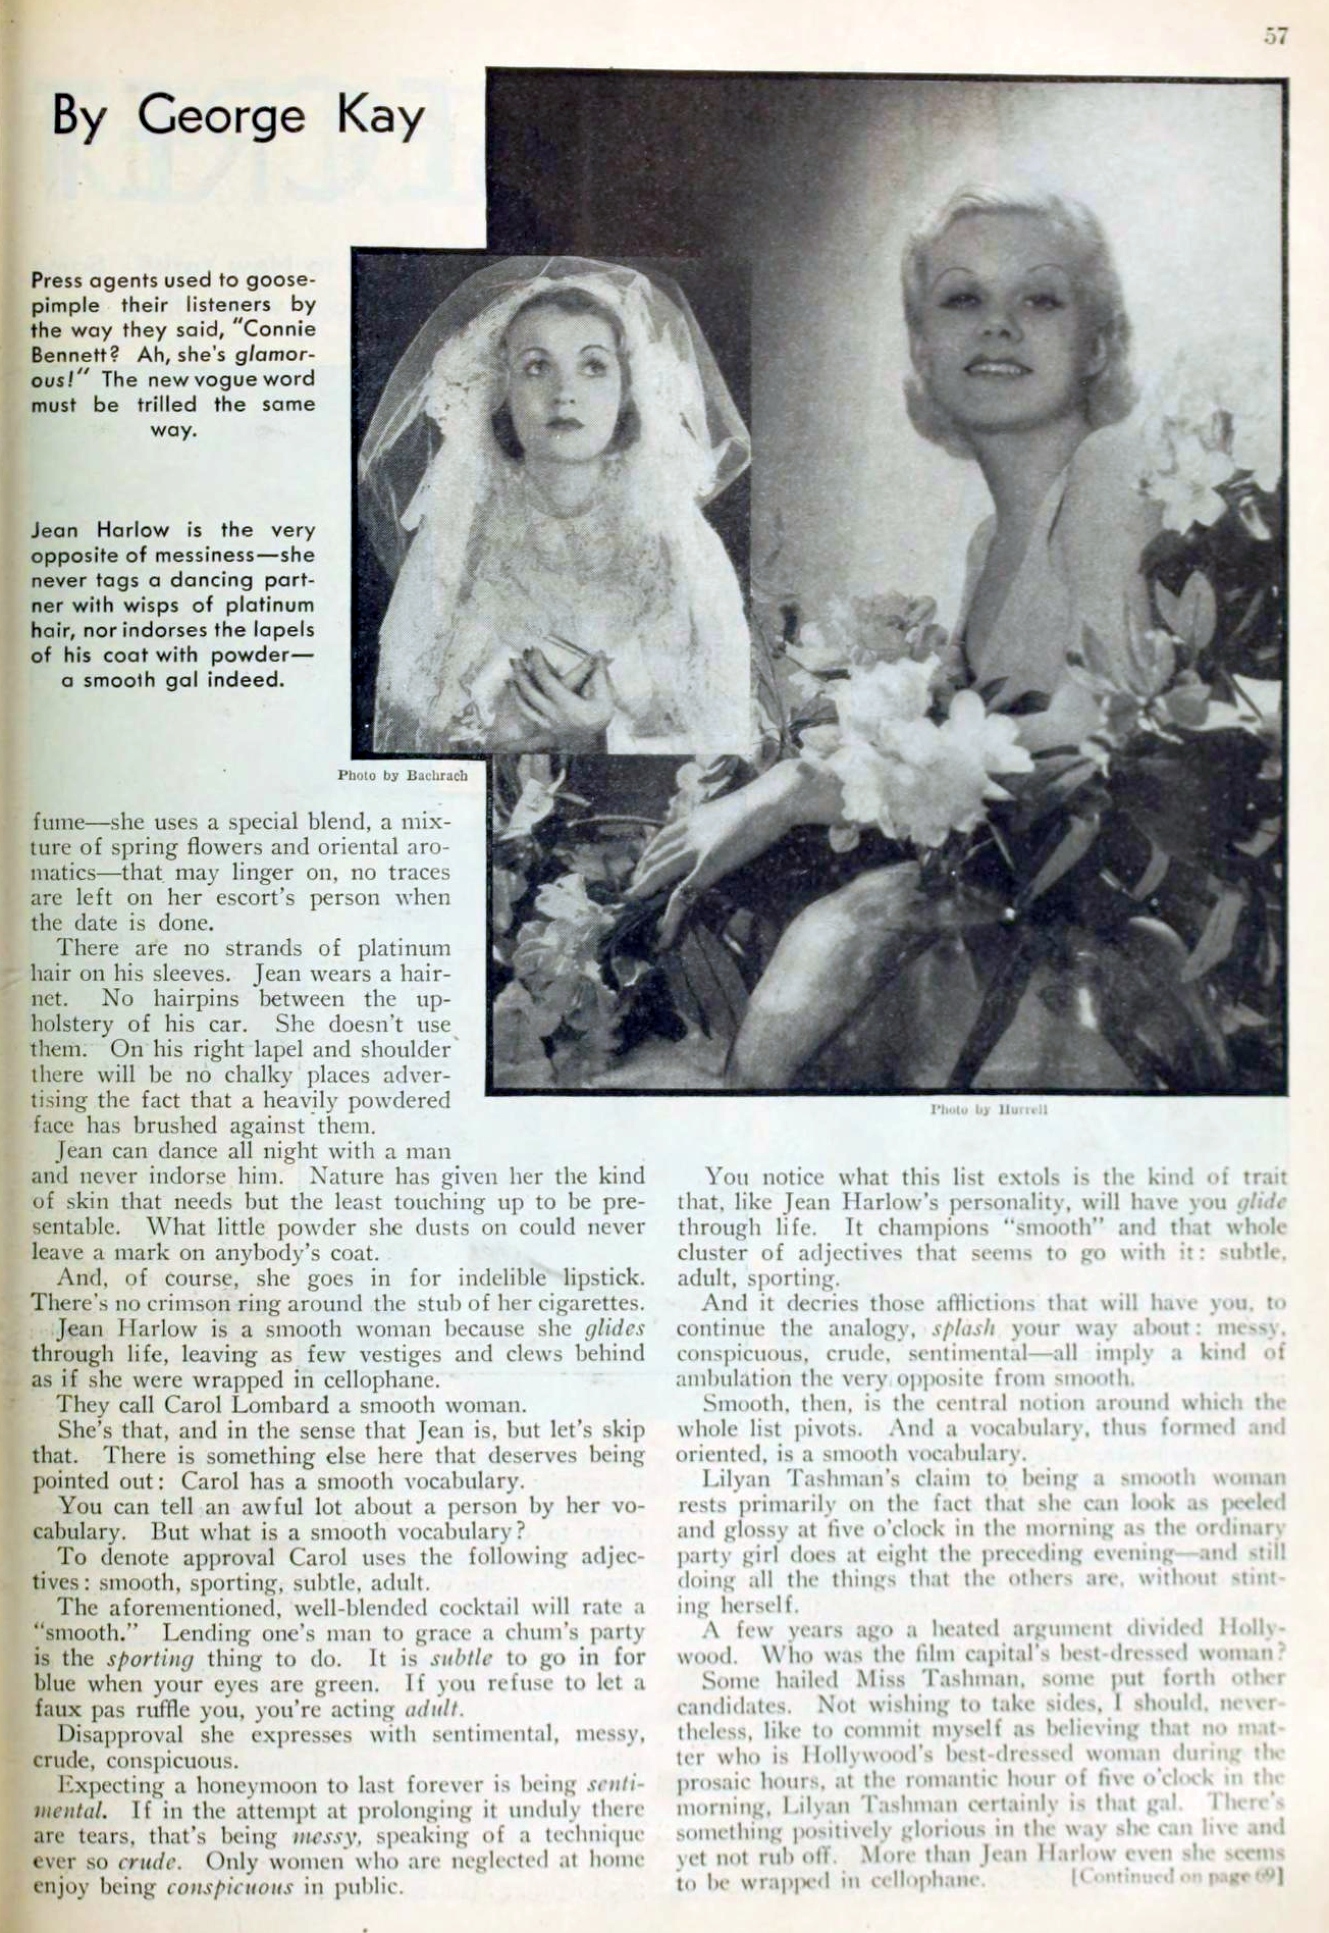 carole lombard picture play april 1933 it's smart to be smooth 01a